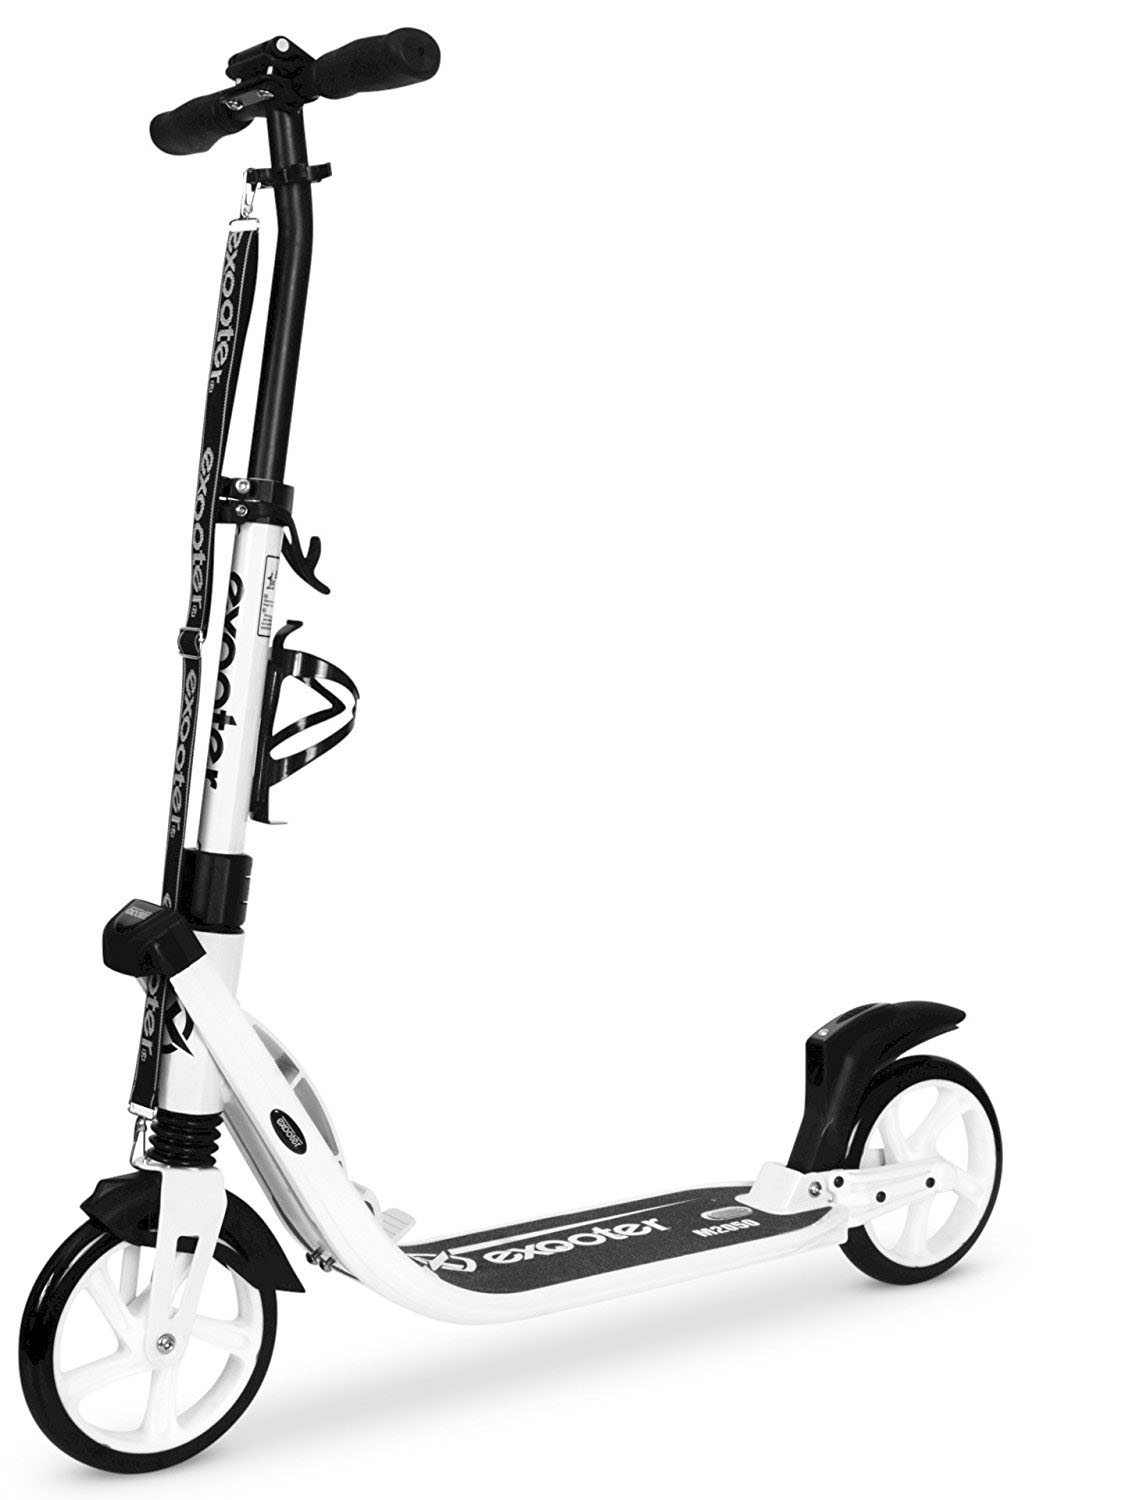 Share Adult kick scooter